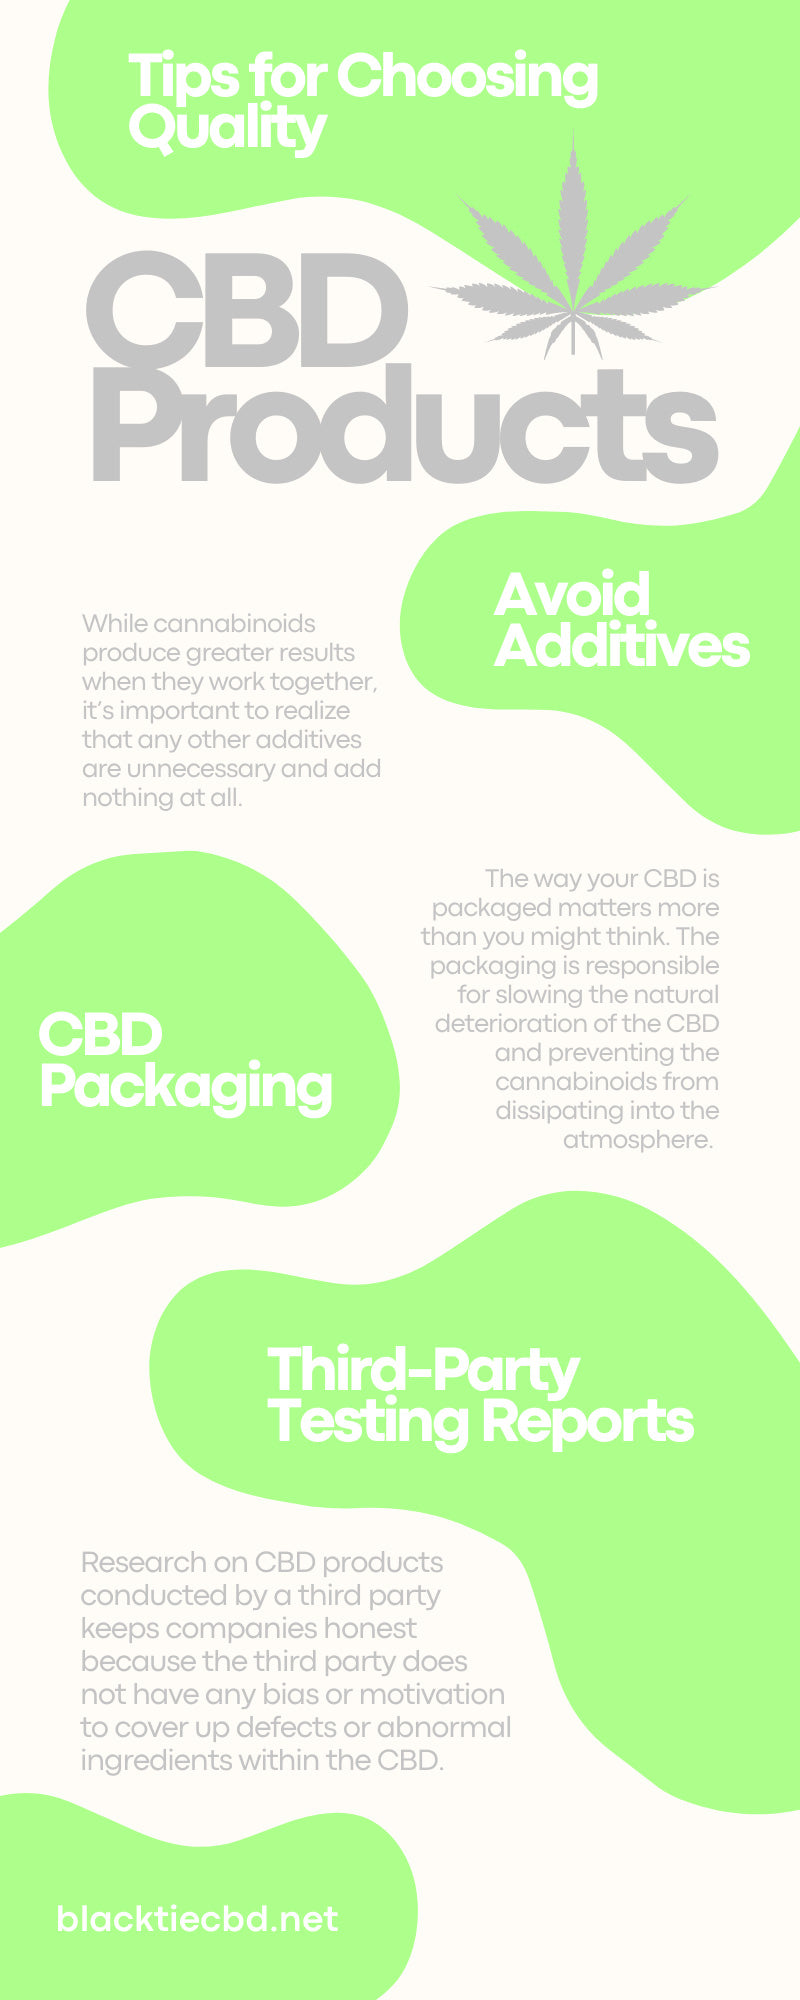 Tips for Choosing Quality CBD Products